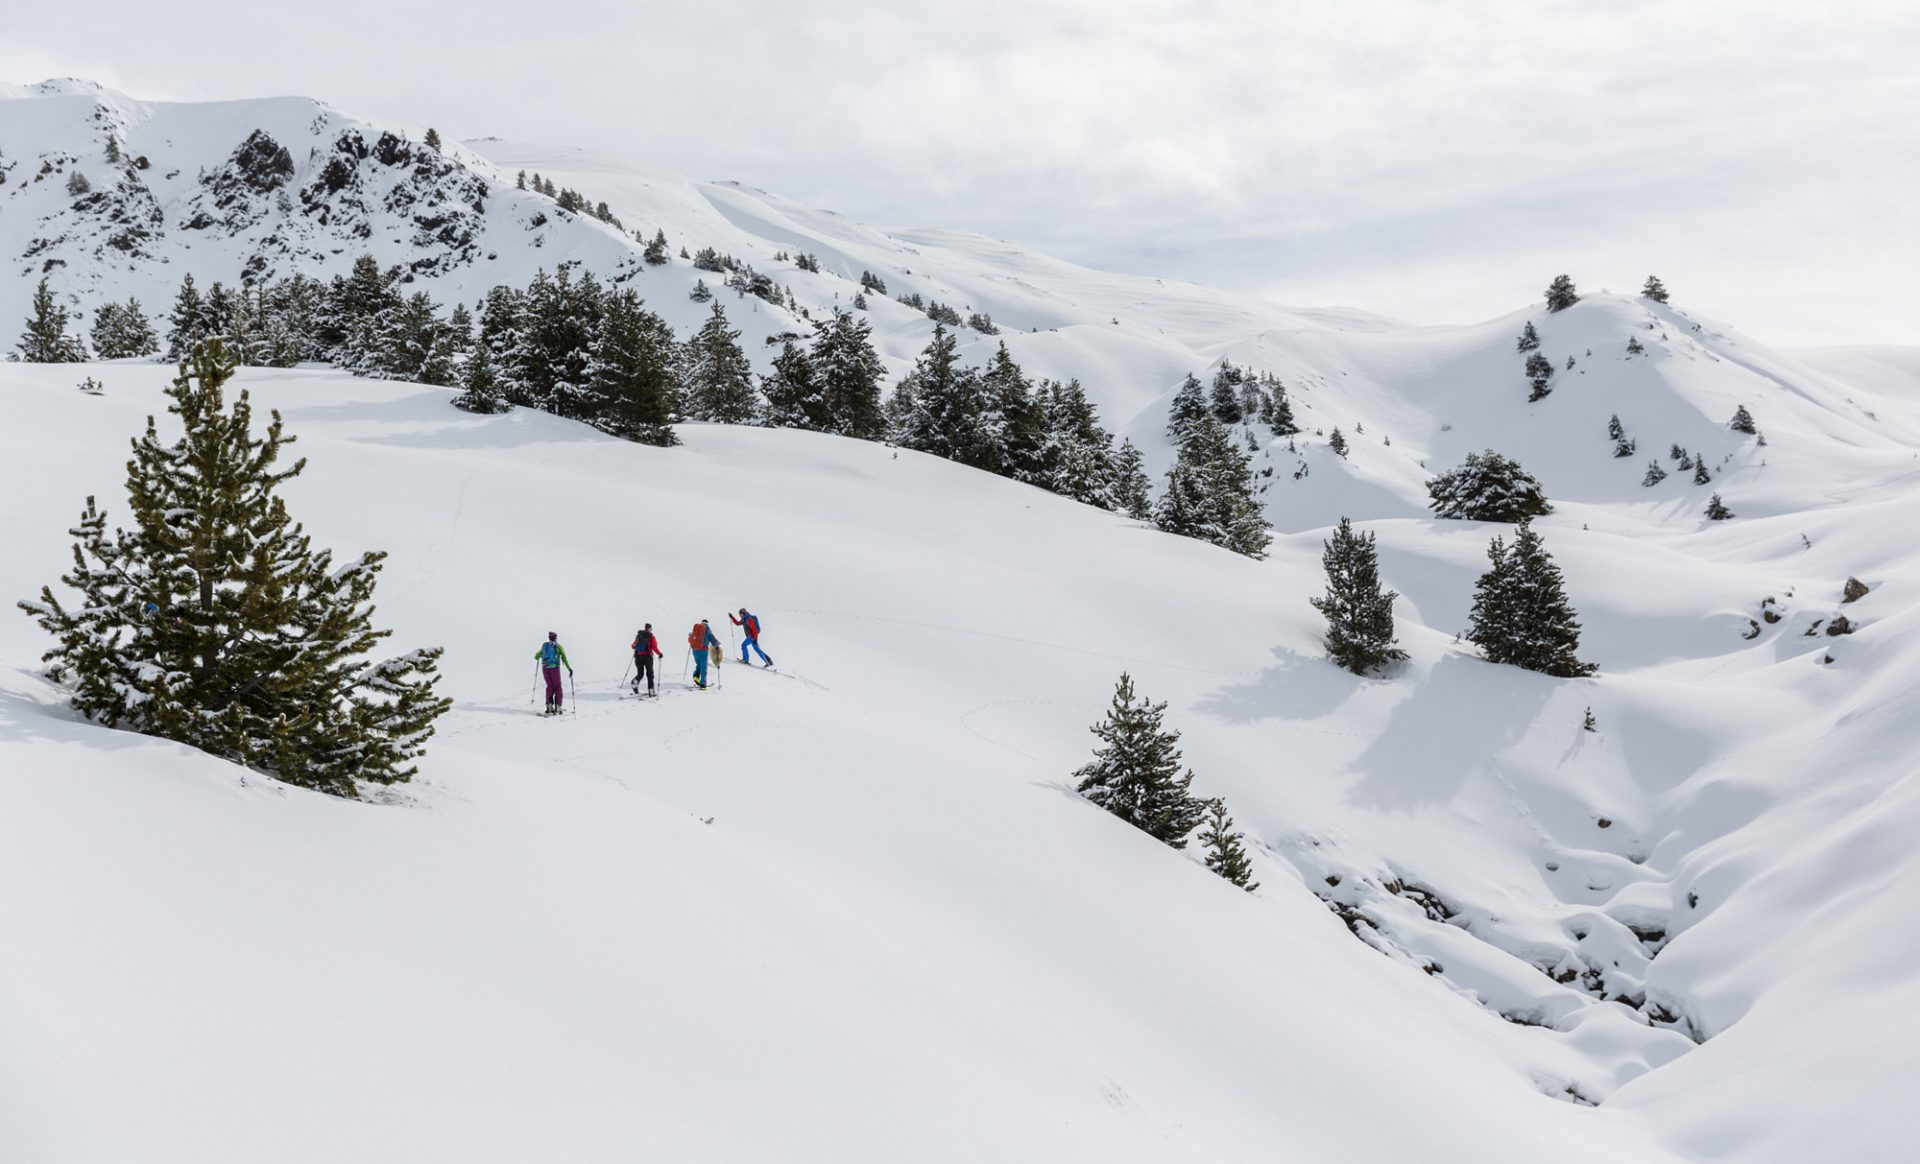 Four people skying uphill in a mountain area.